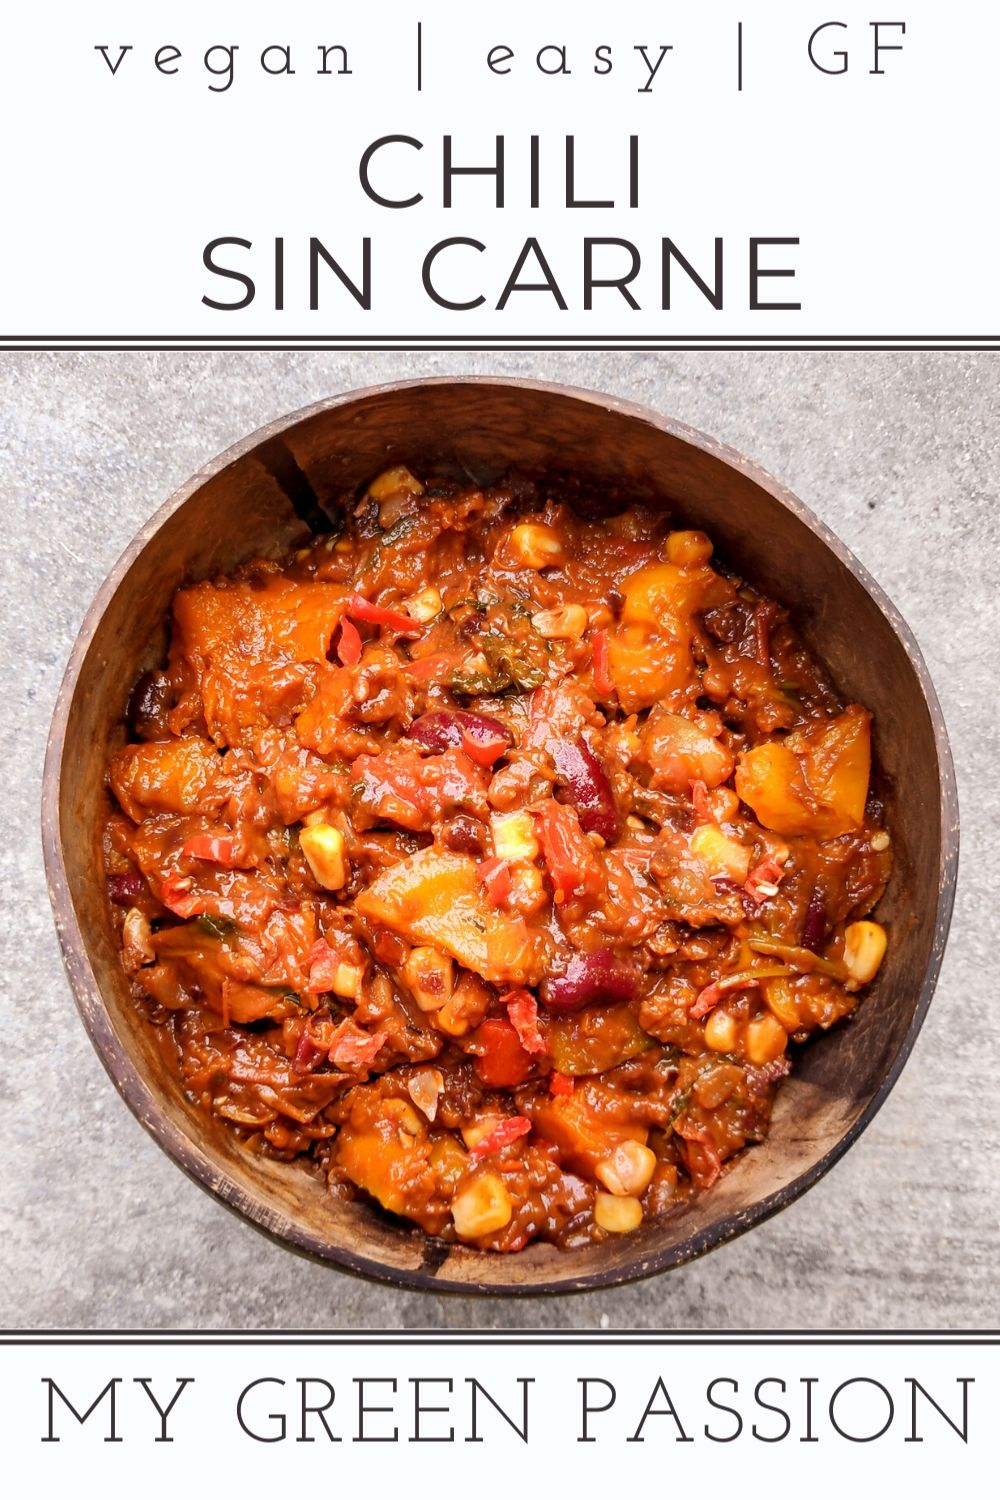 meatless chili con carne vegan easy gluten free